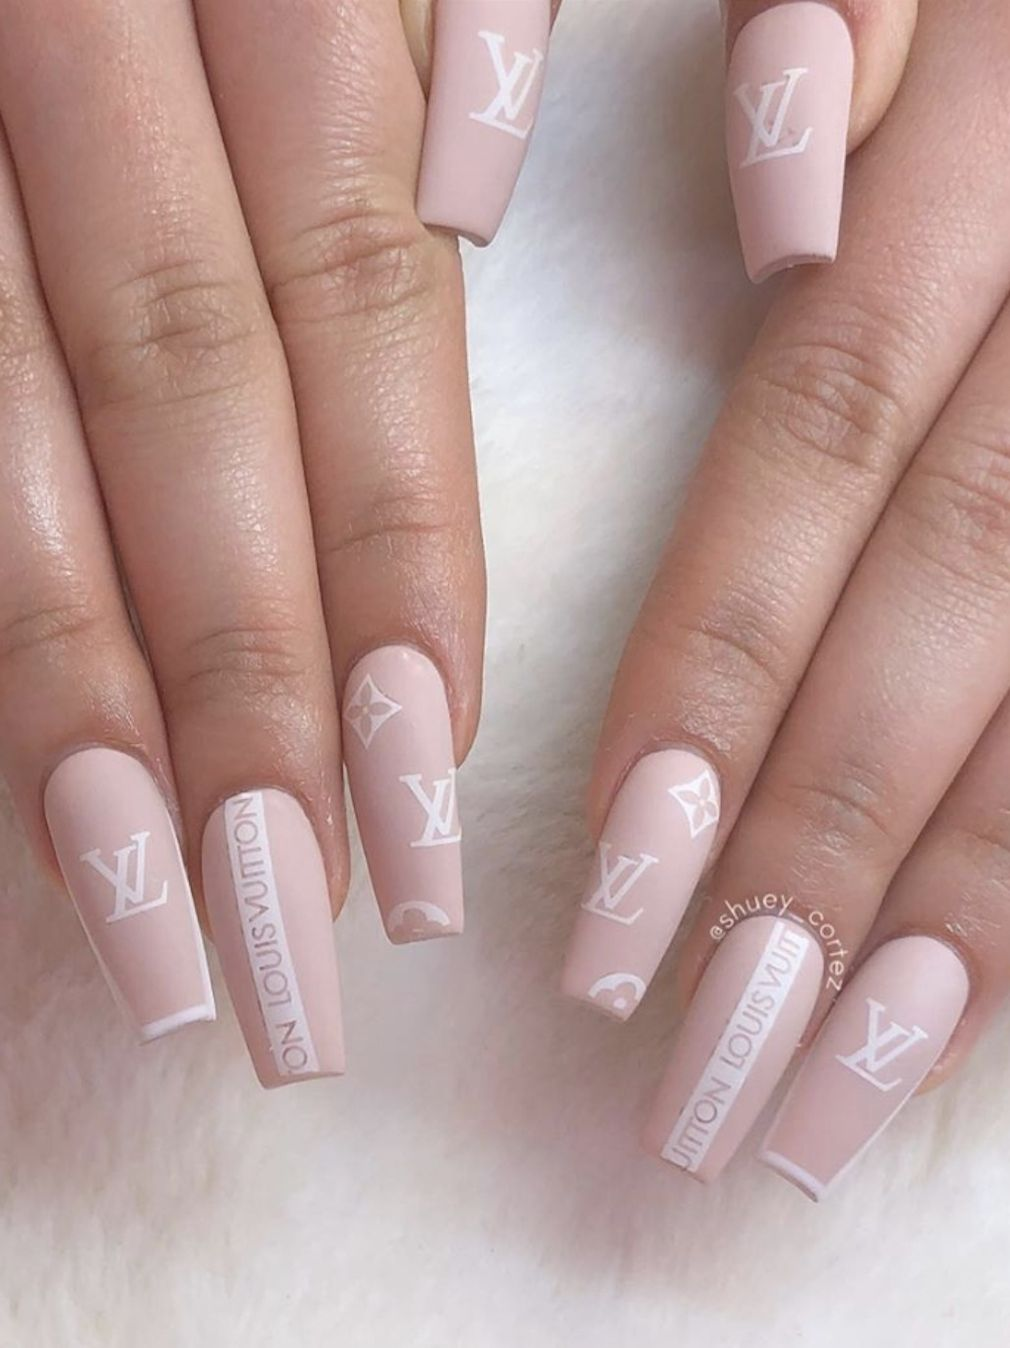 Easy Spring Nails Spring Nail Art Designs To Try In 2020 Simple Spring Nails Colors For Acry In 2020 Cute Acrylic Nail Designs Best Acrylic Nails Long Acrylic Nails